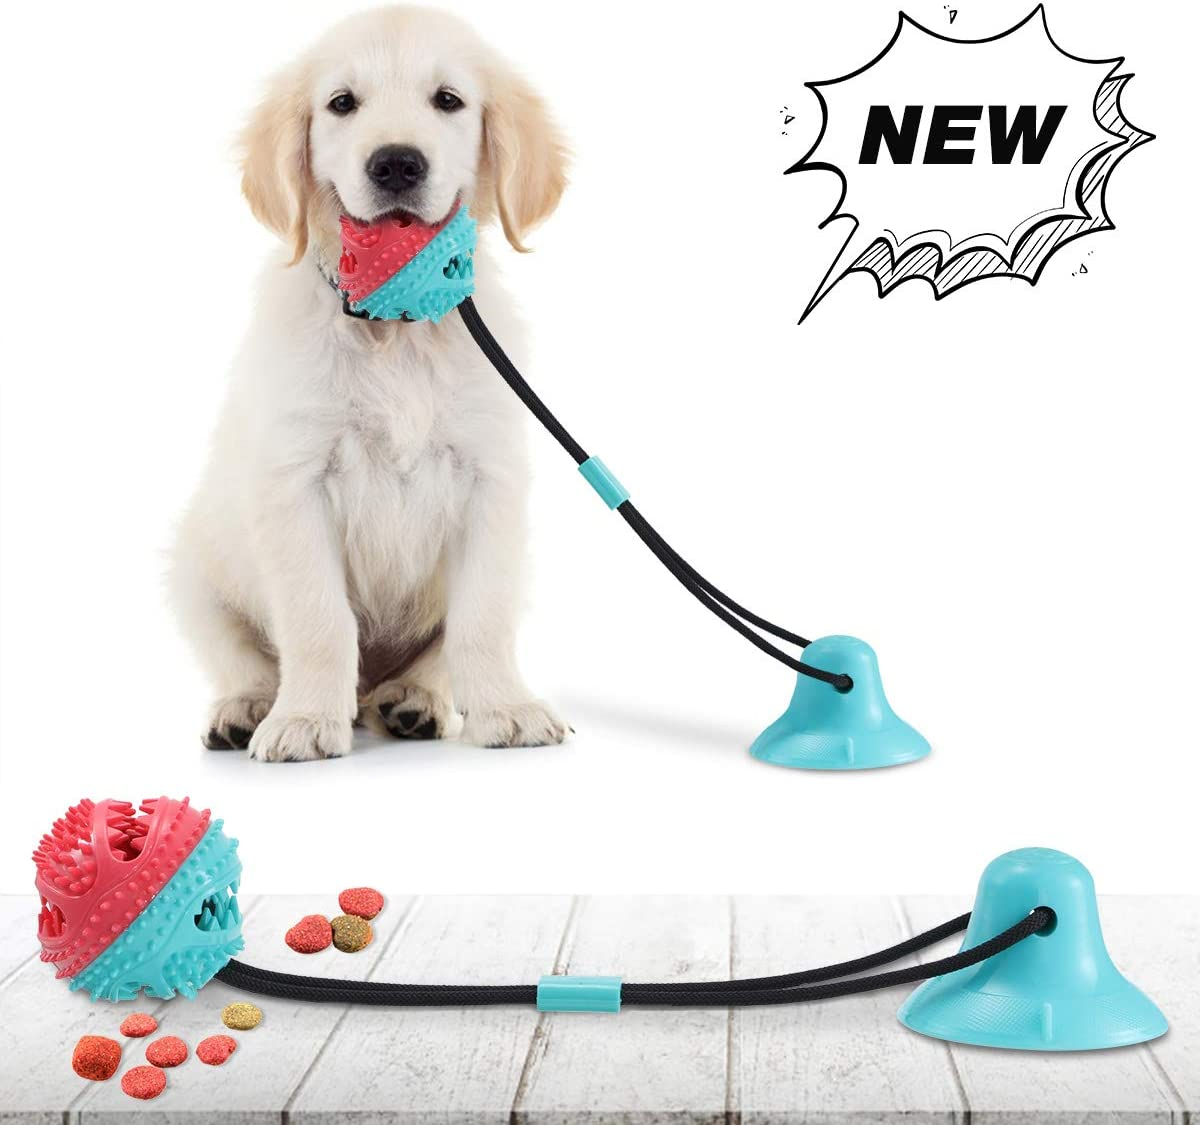 CAMTOA Dog Chew Toys for Aggressive Chewers, Suction Cup Dog Chewing Toy, Dog Rope Ball Toys with Suction Cup for Small Large Dogs, Puppy Dog Teeth